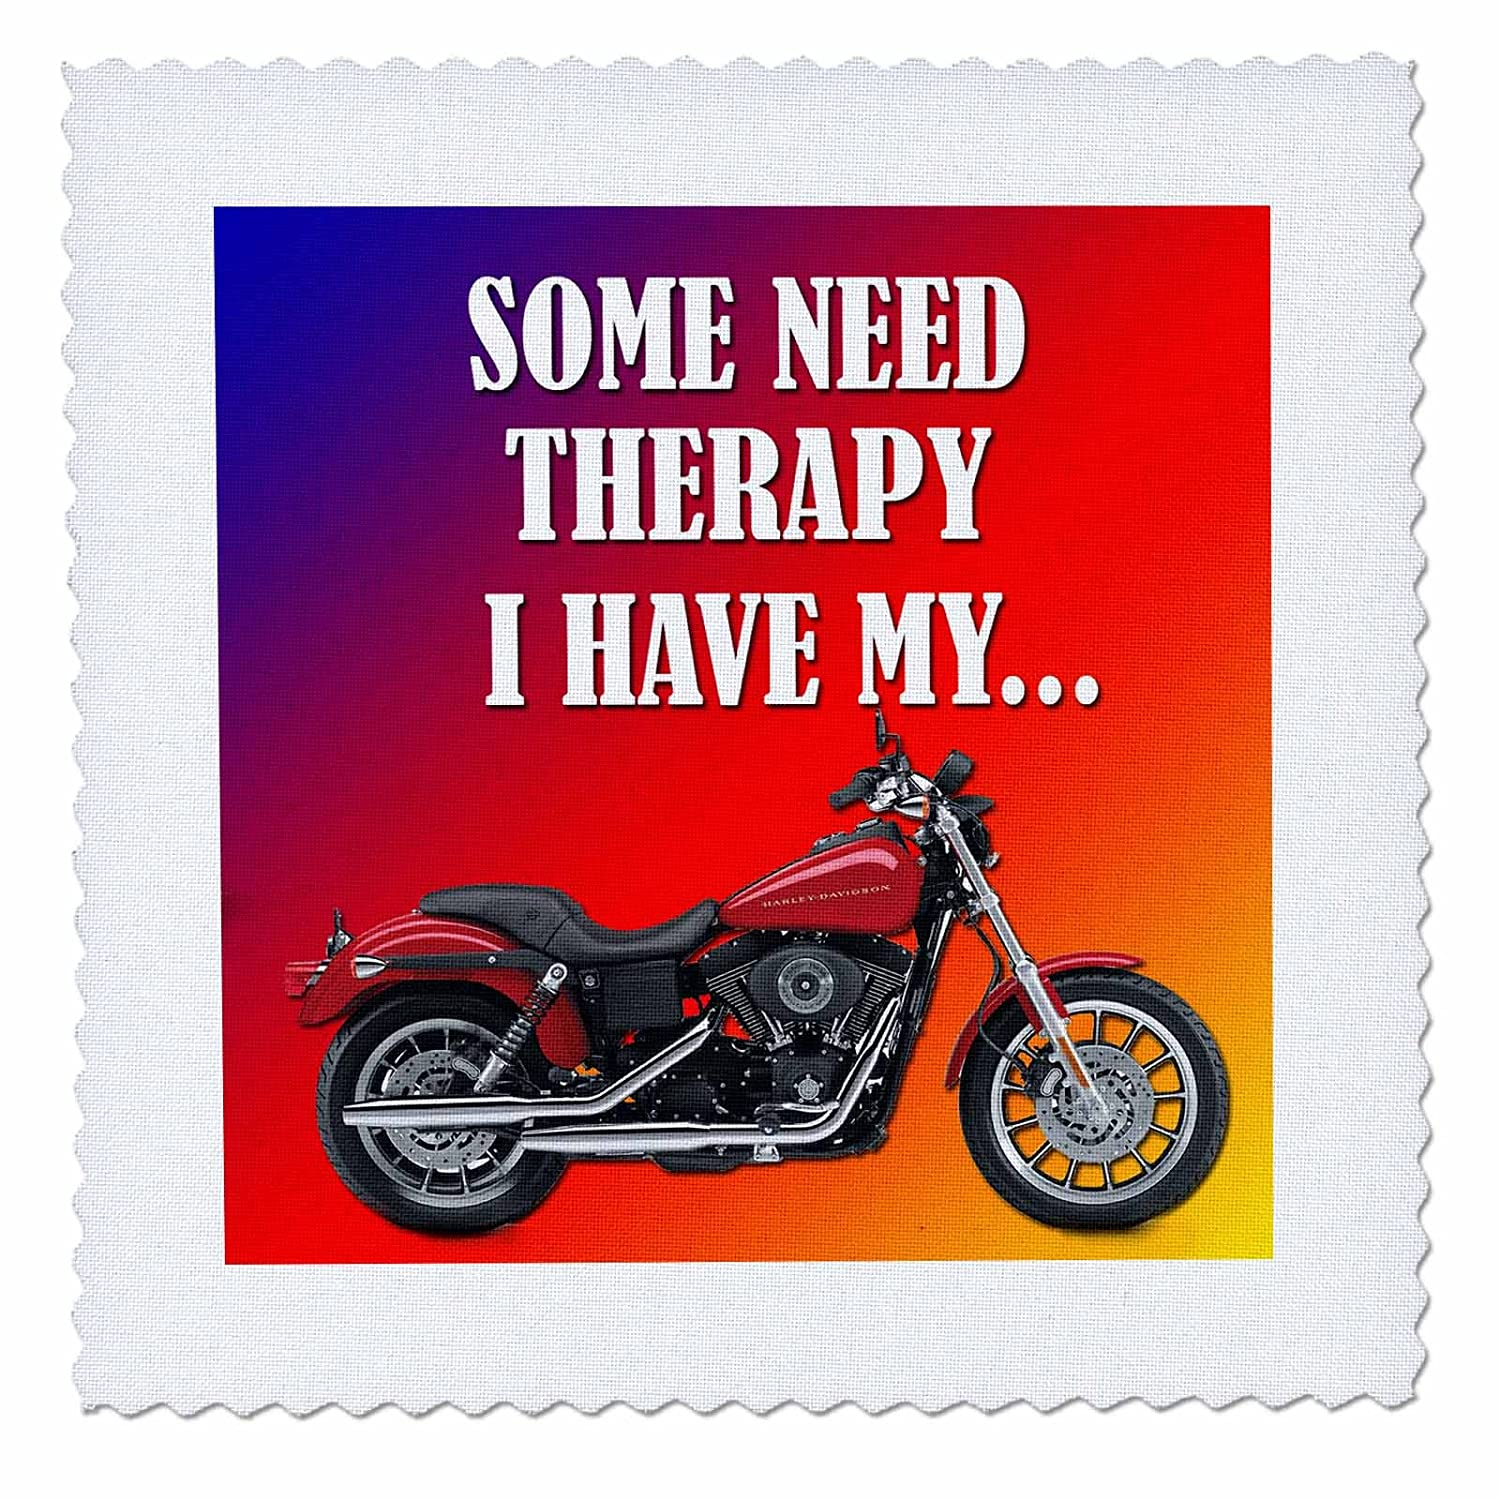 Picturing Harley Davidson Cool Bike 6 by 6-Inch I Have My Bike qs/_221537/_2 Quilt Square 3dRose Some Need Therapy